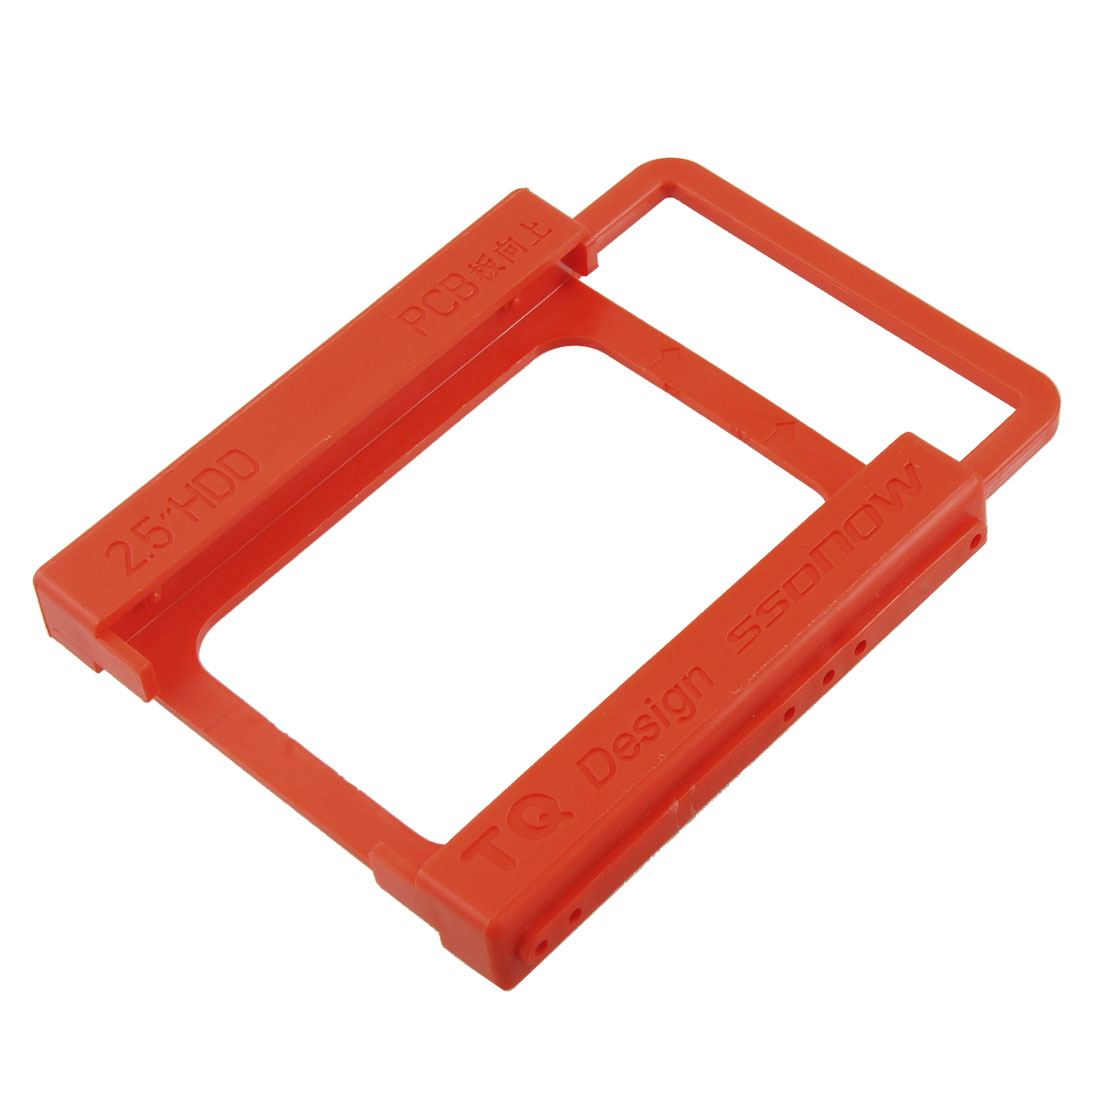 "Red Plastic 2.5"" HDD Mounting Adapter Bracket Support Holder"